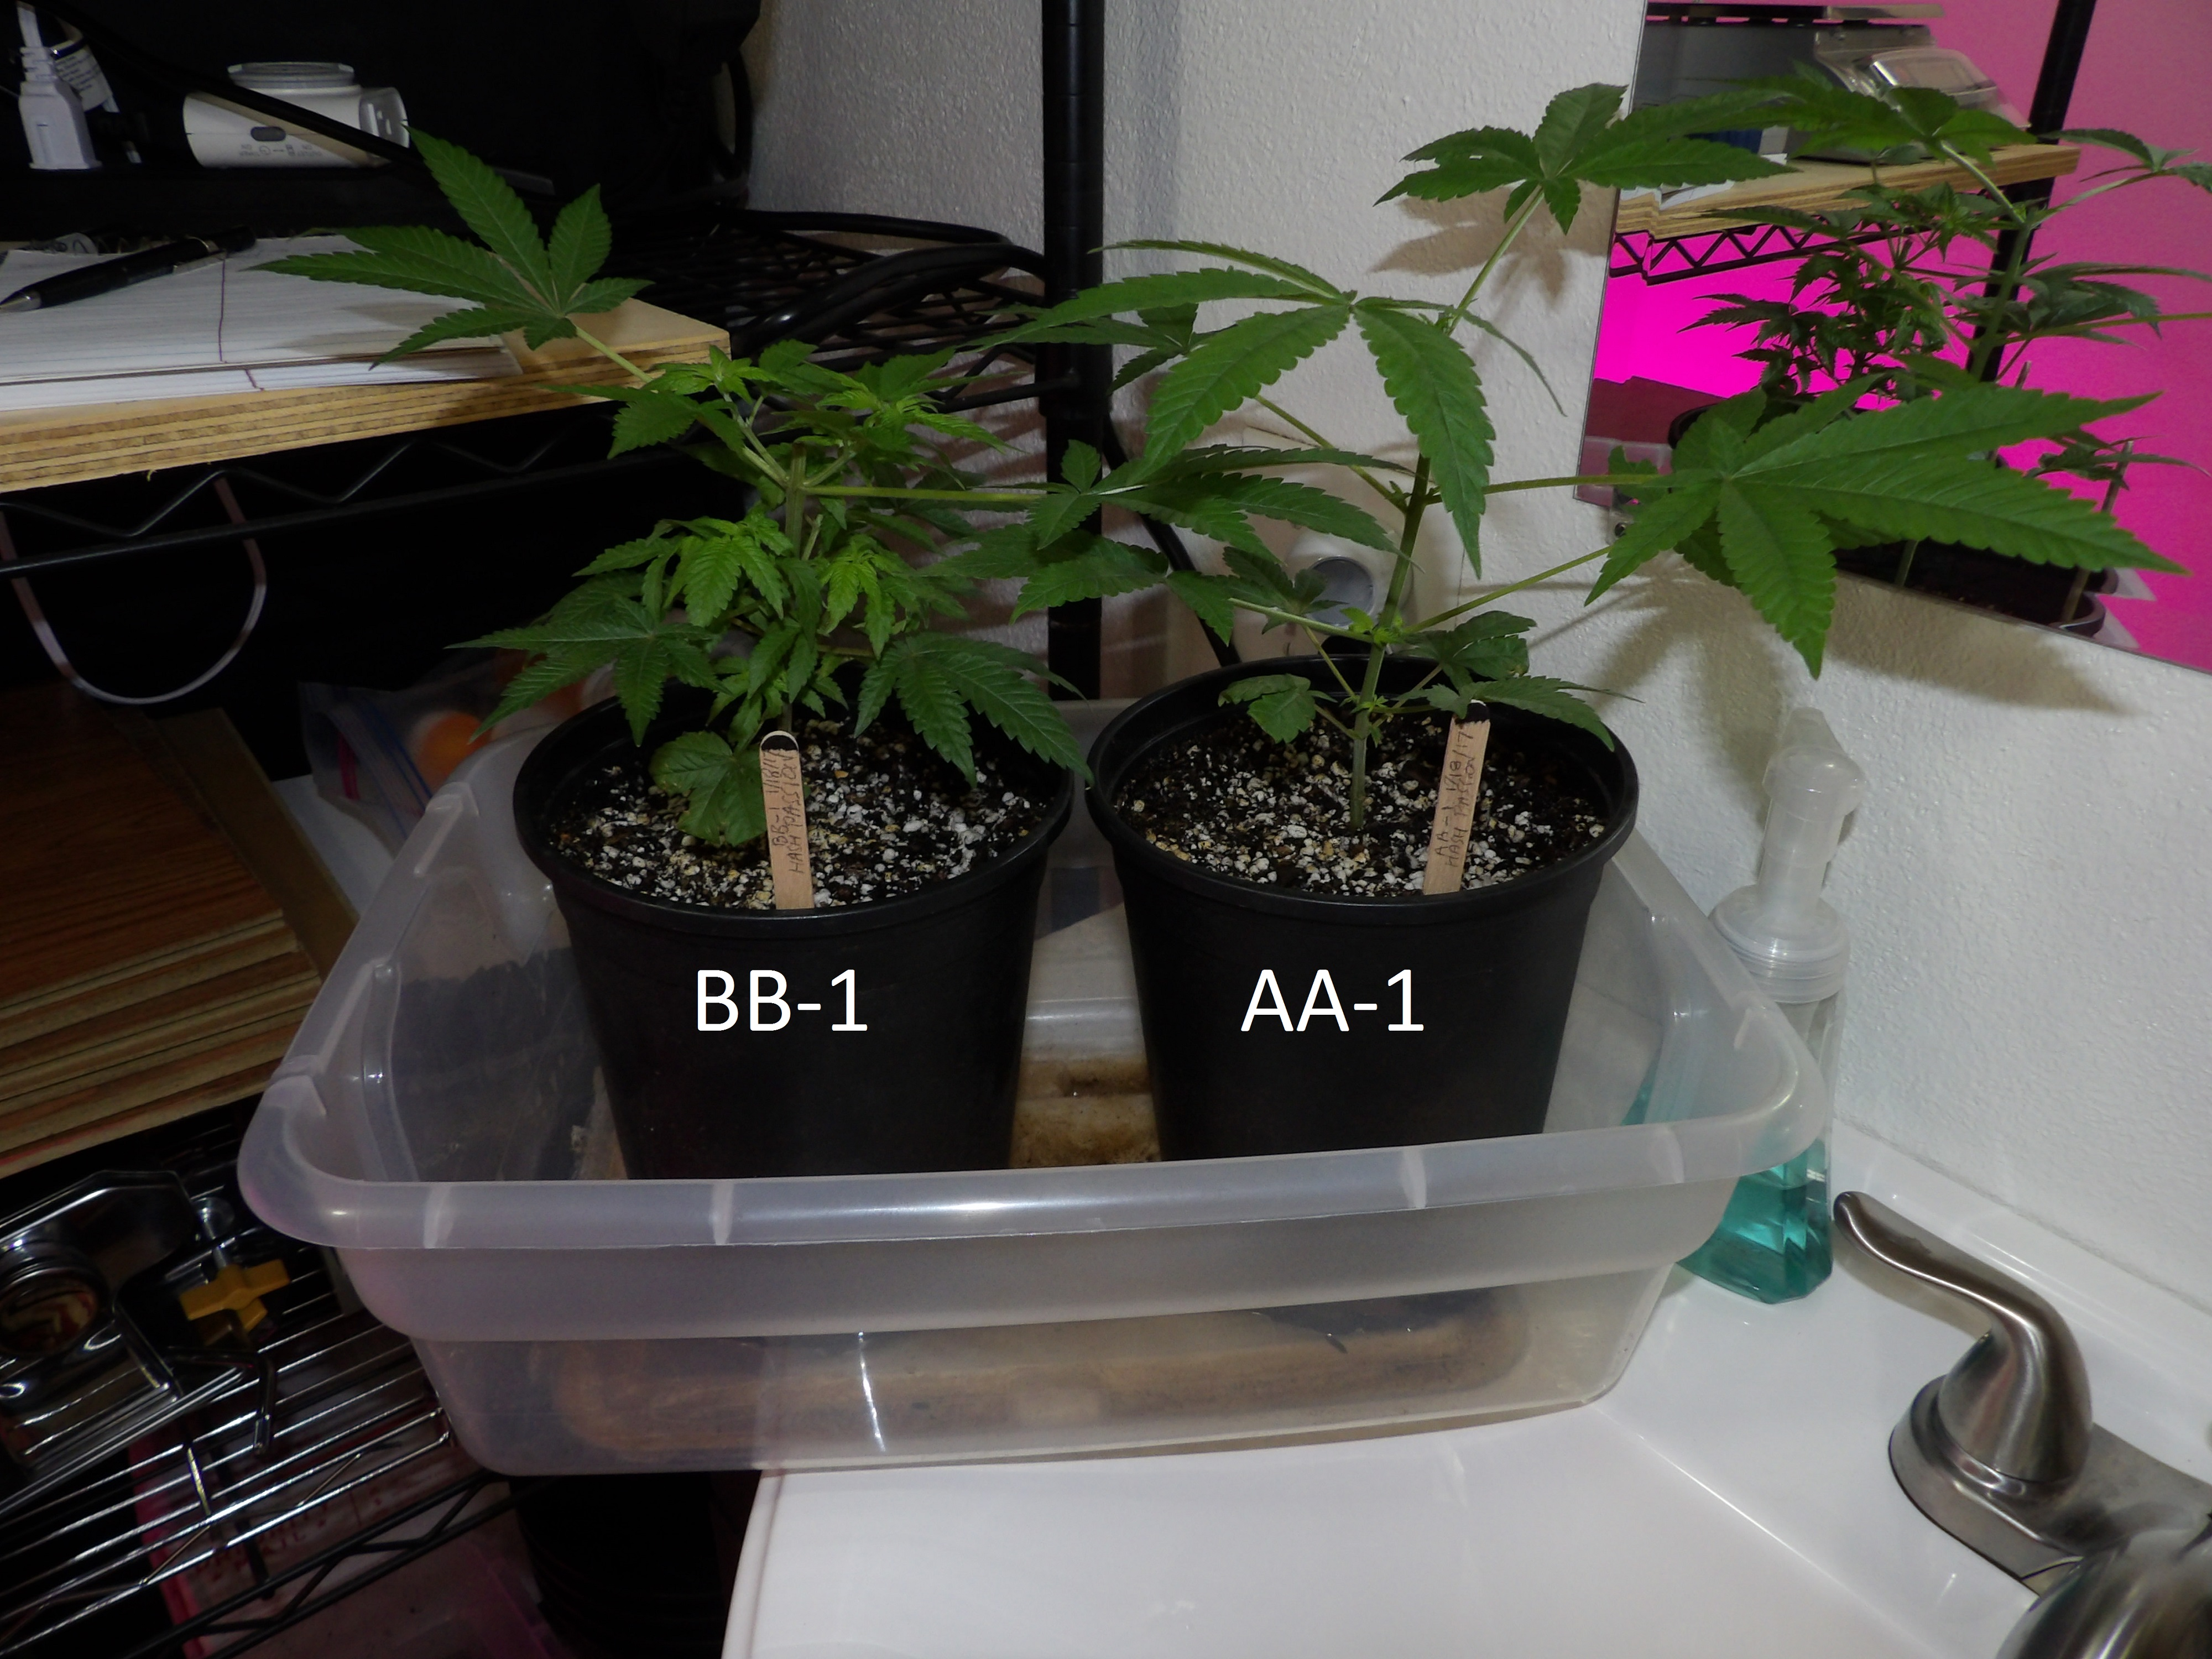 Clones AA-1 and BB-1 after one week of spraying with homemade Colloidal Silver.